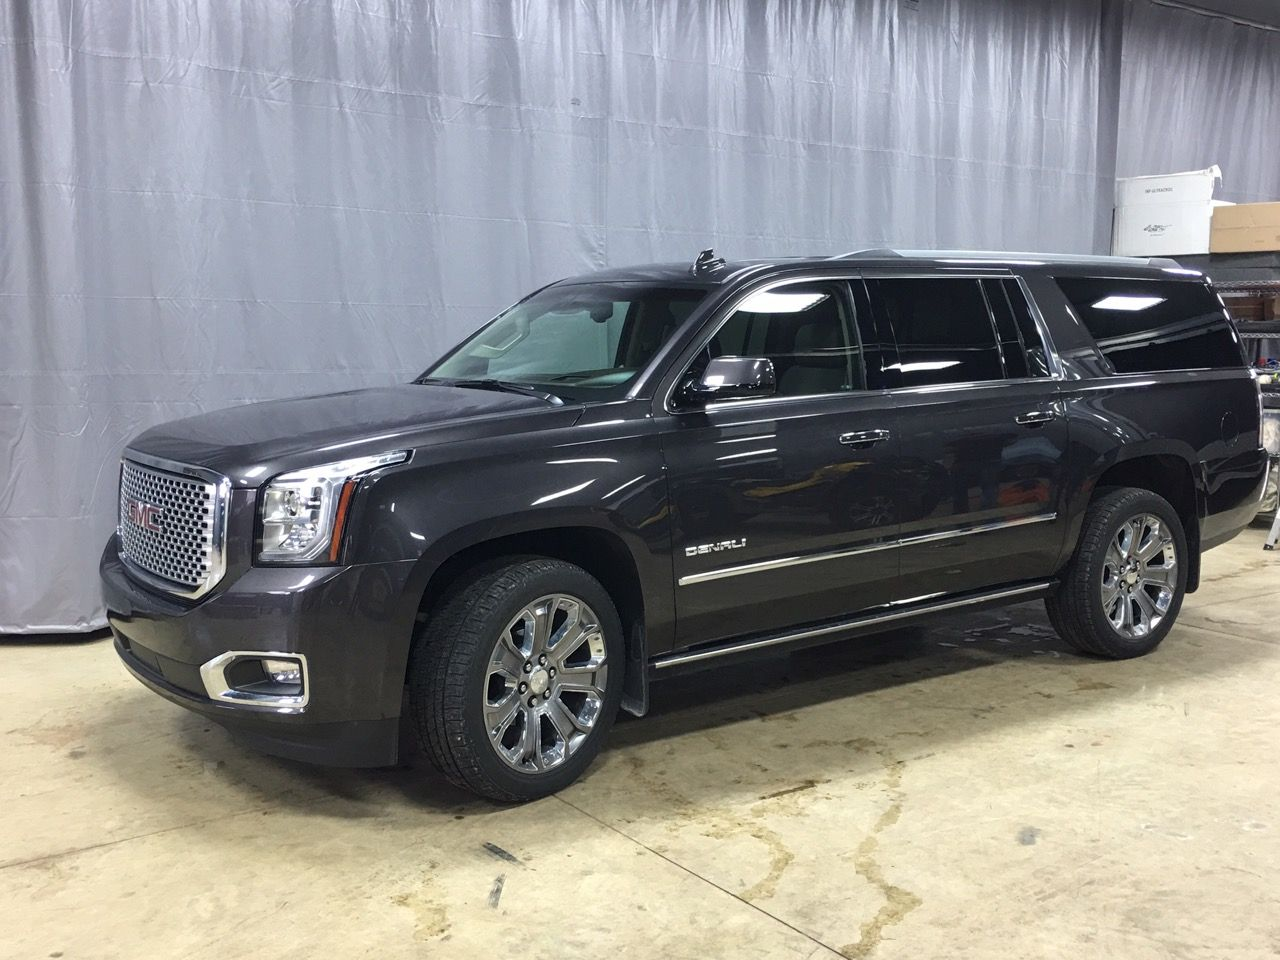 2016 Gmc Yukon Xl Denali 81 828 00 Original Msrp Only 10200